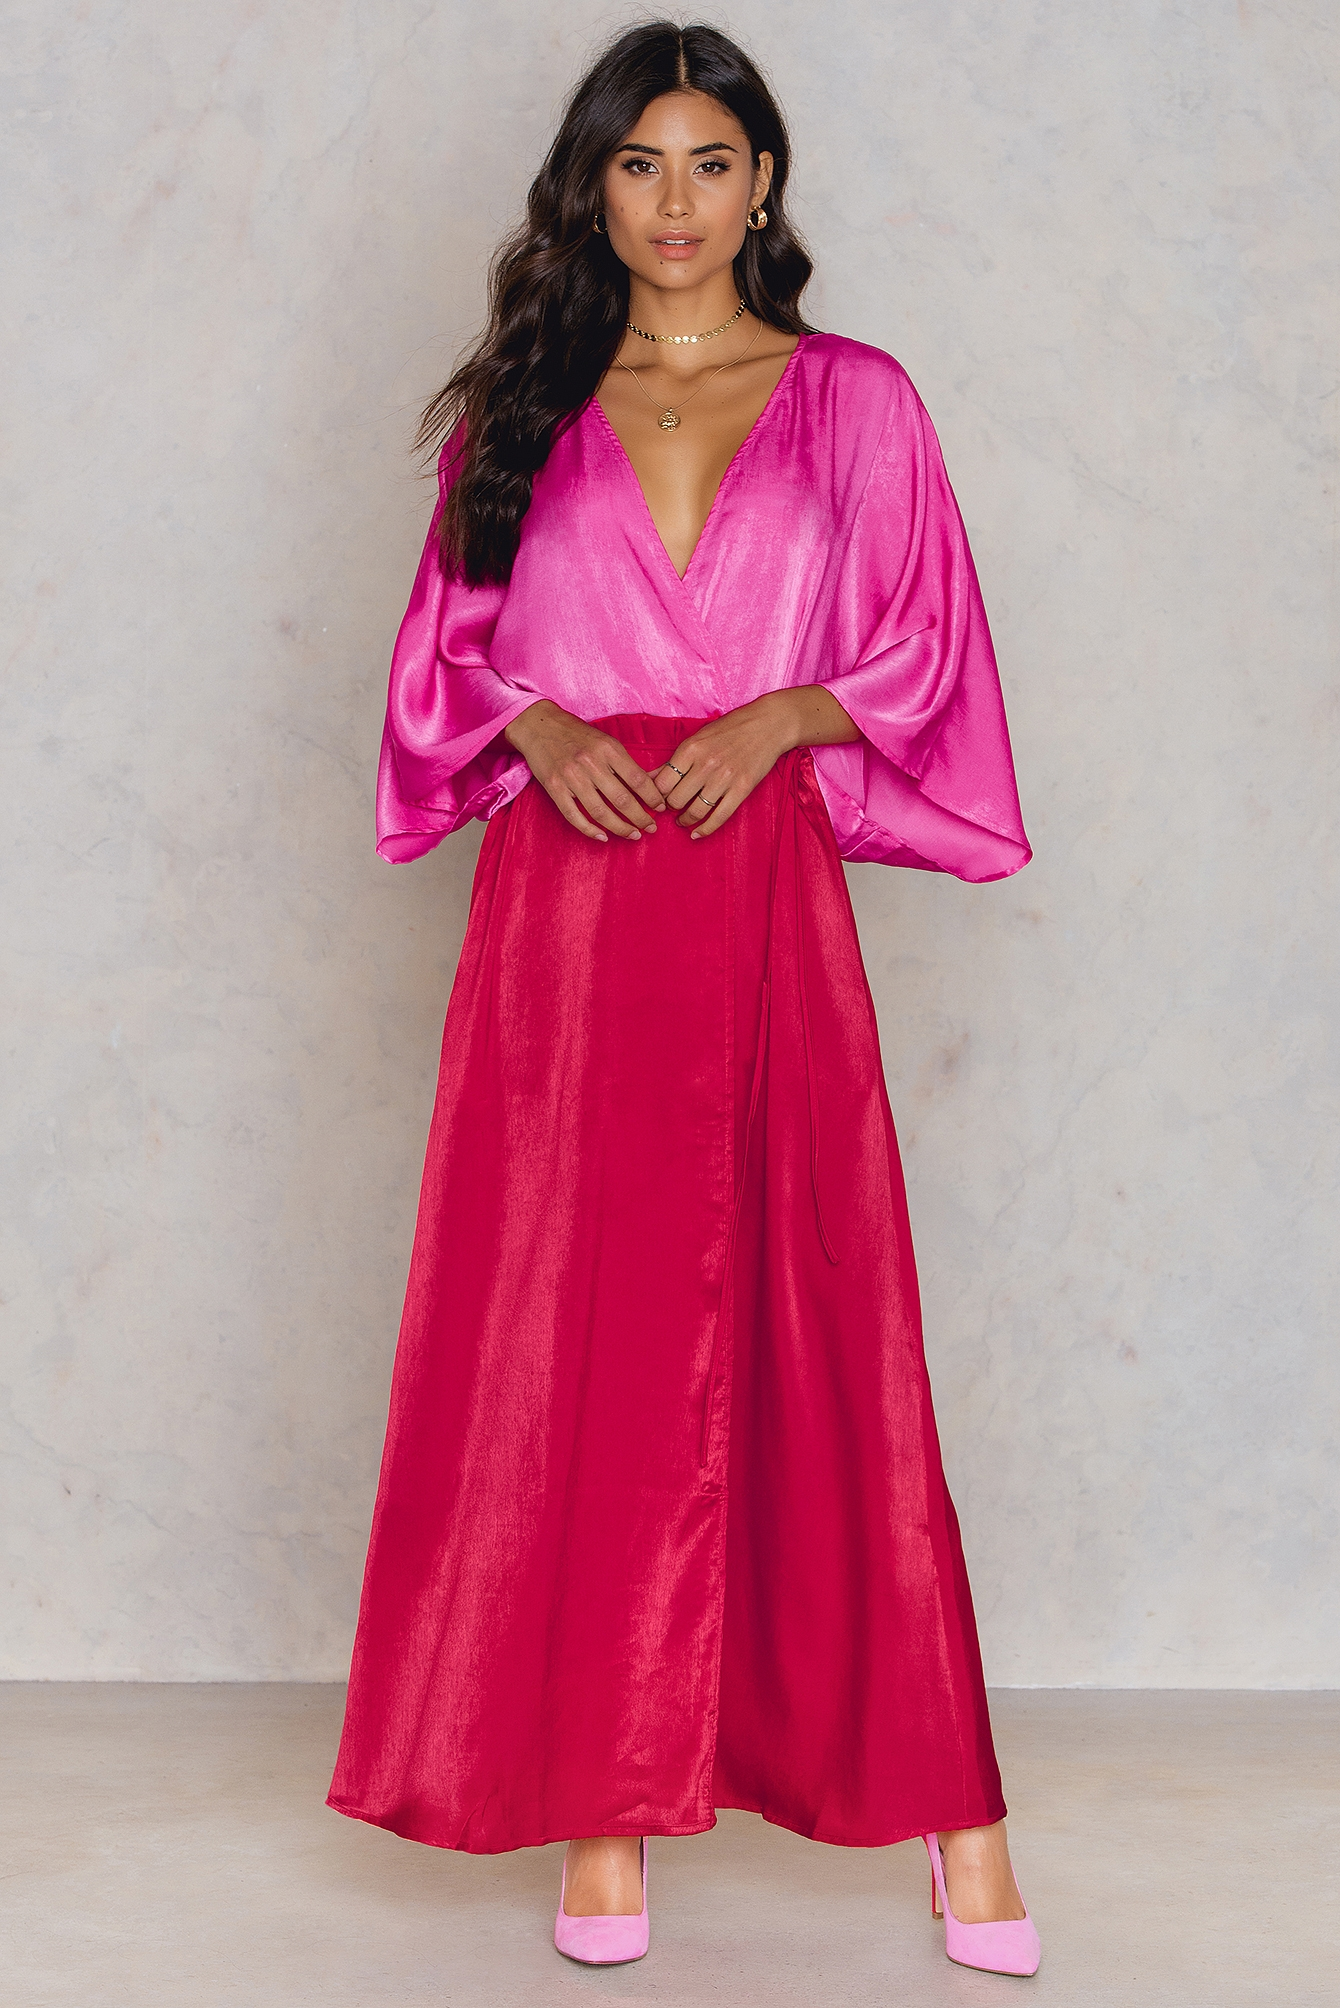 NA-KD Trend Satin Coat Dress Red, Pink